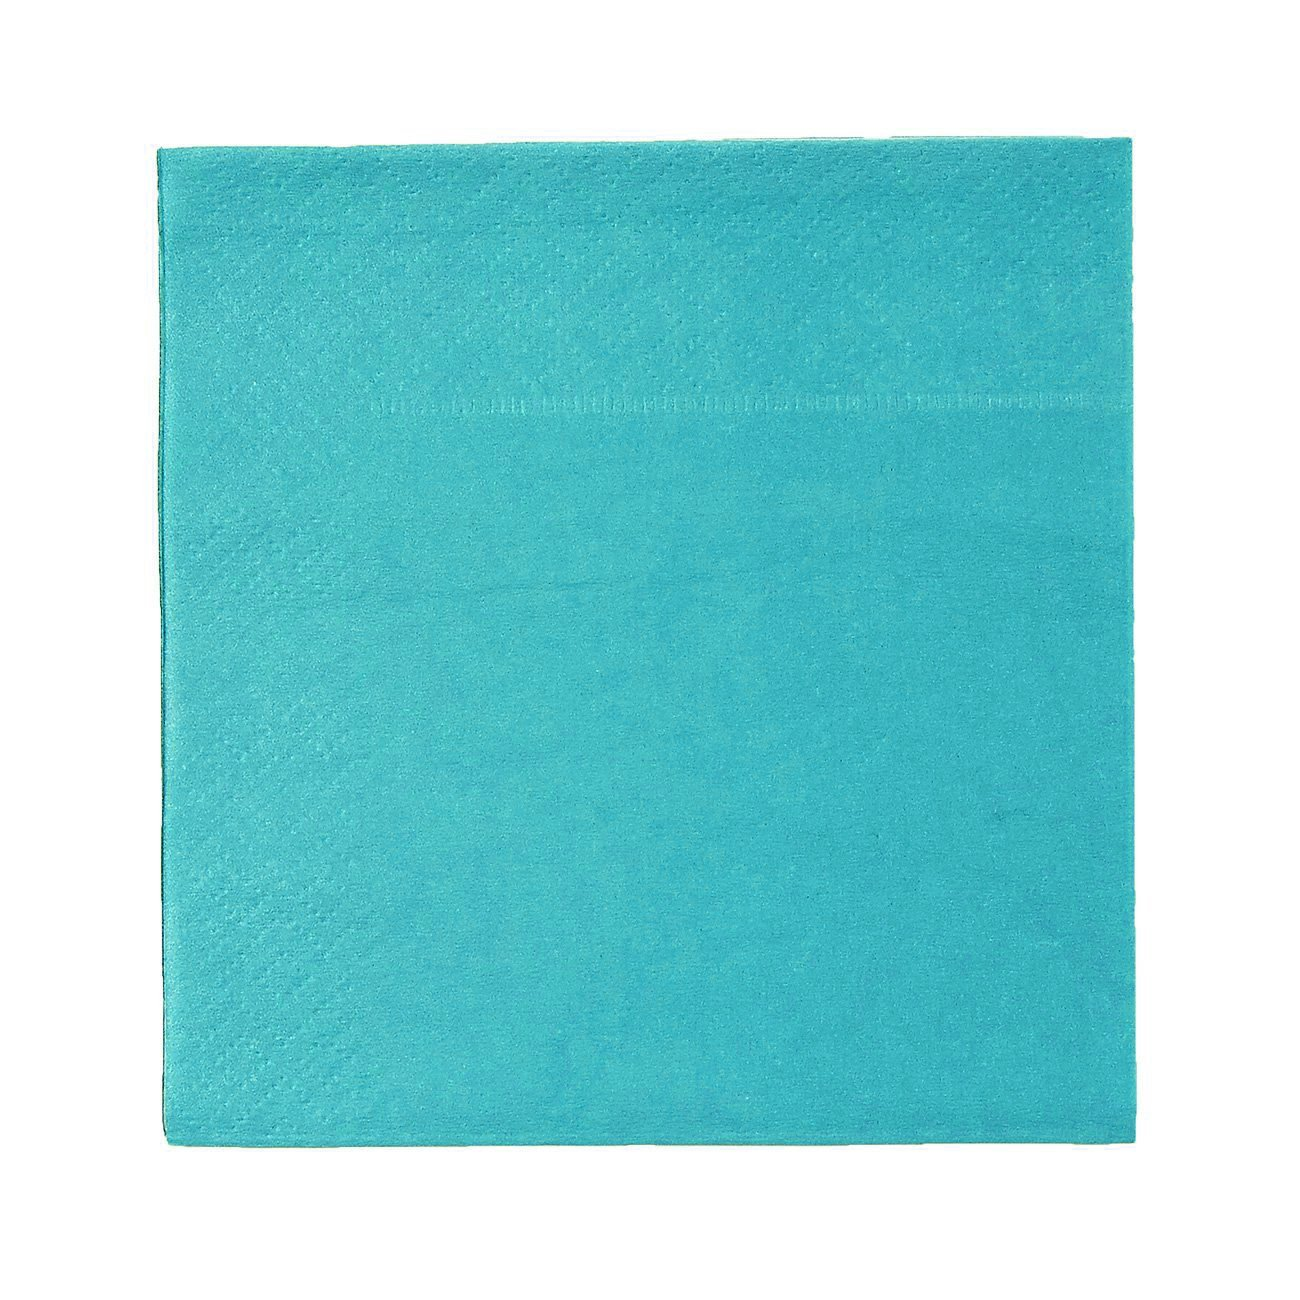 Cocktail Napkins - 150-Pack Disposable Paper Napkins, 2-Ply, Teal Green, 13 X 13 Inches